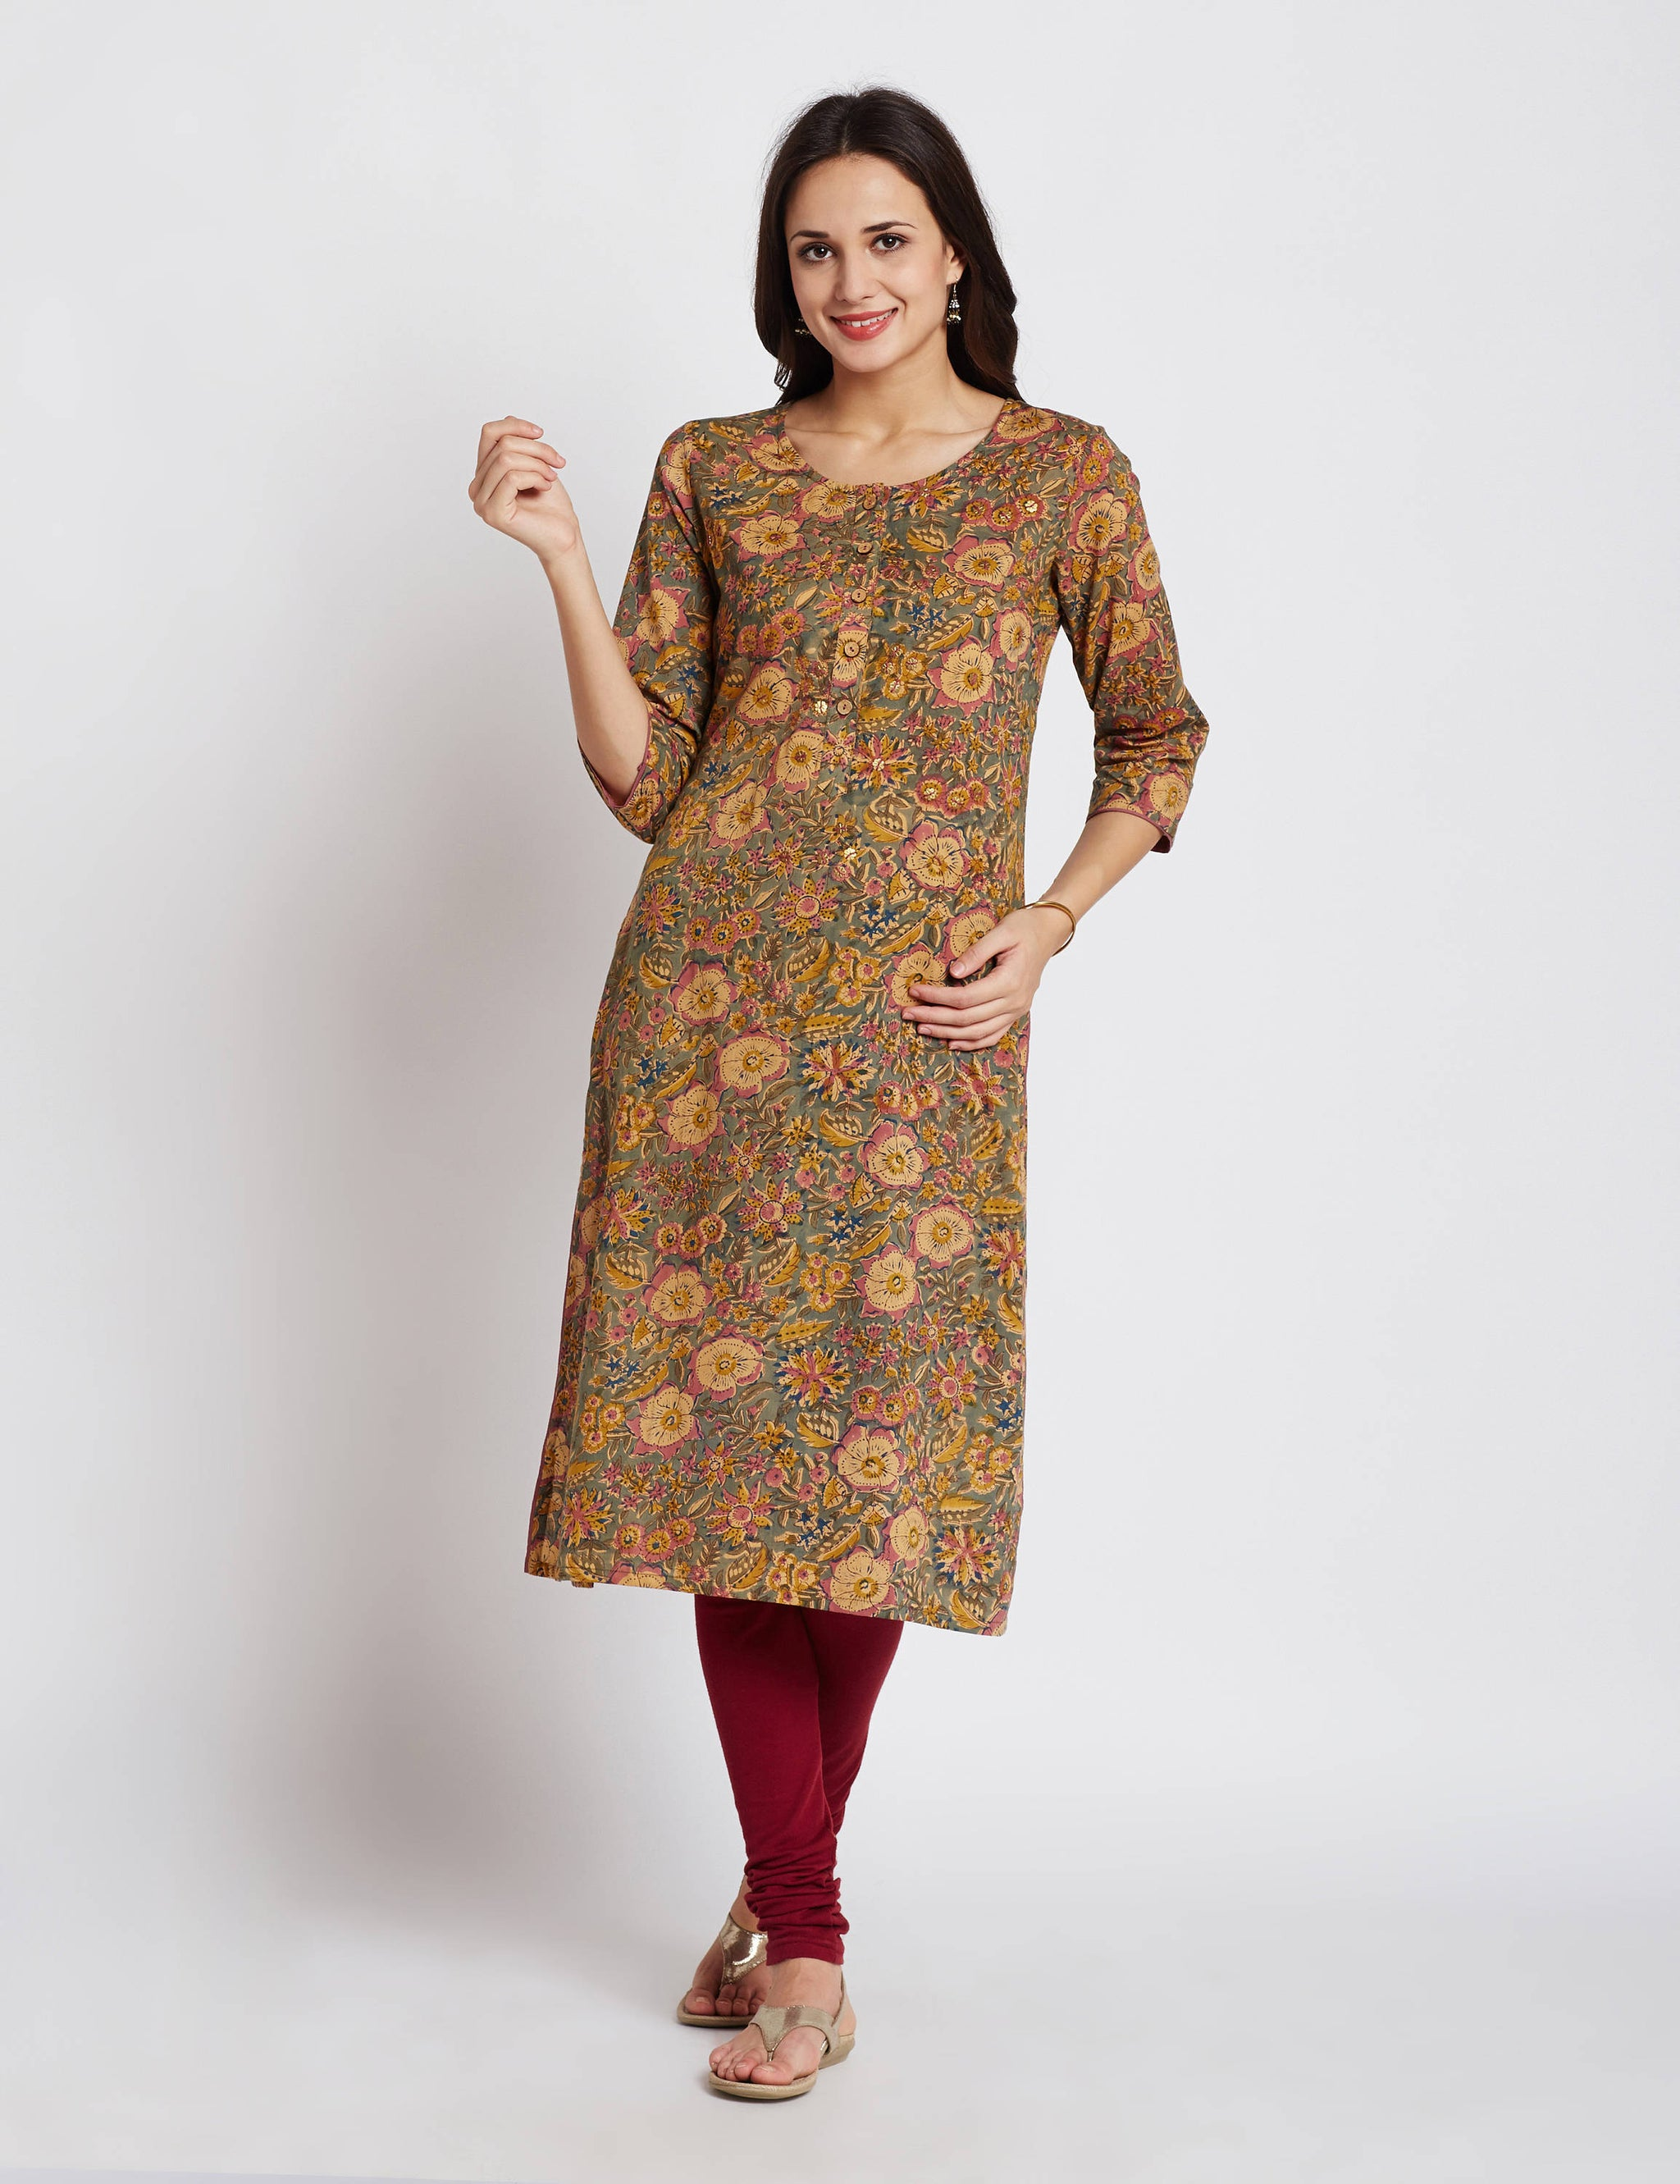 Hand block printed ethnic long Indian kurta with handwork, brass accessories on front  & trims on side slits